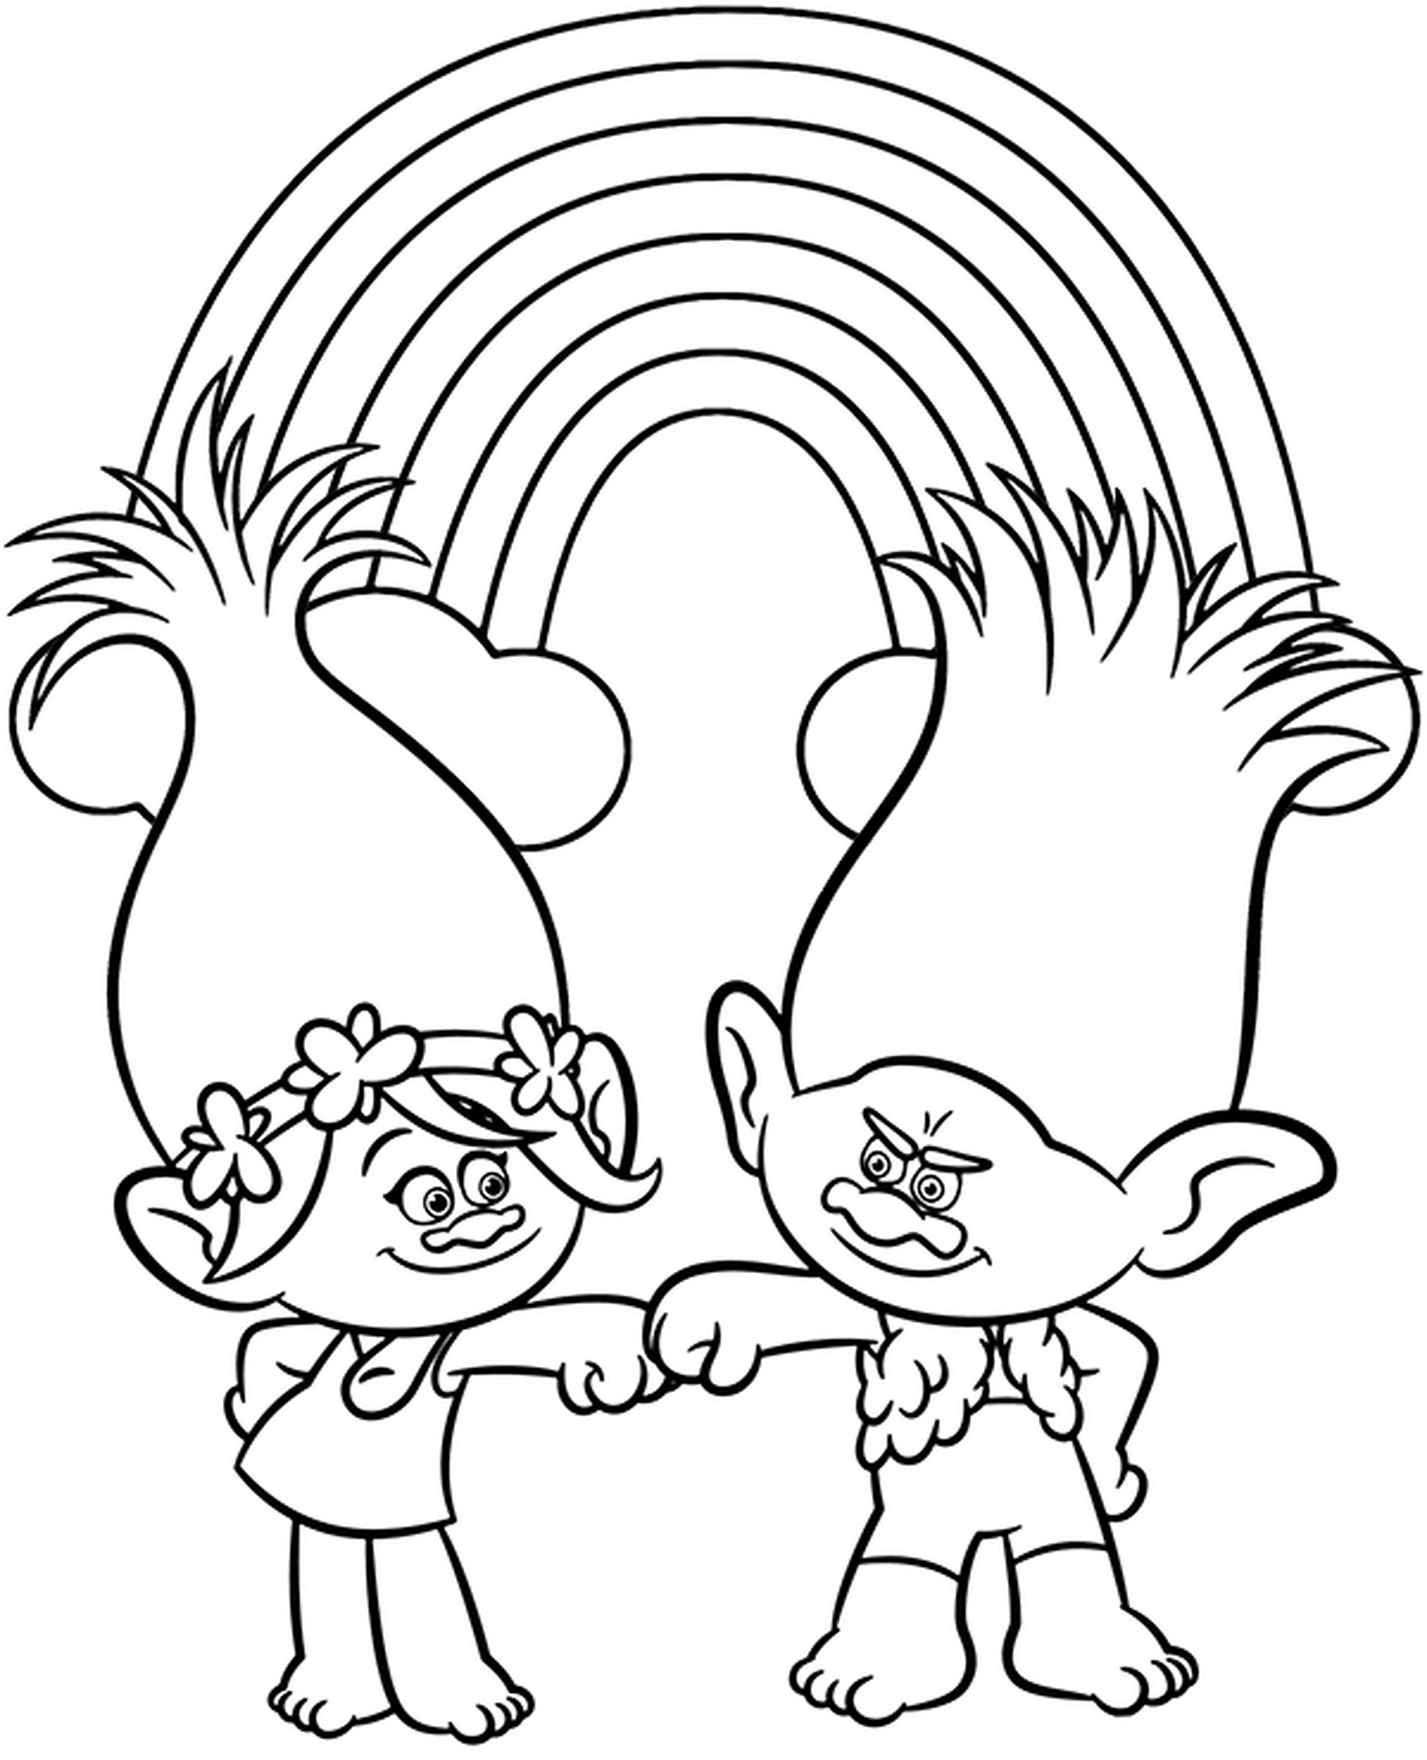 Princess Poppy And Branch Coloring Page